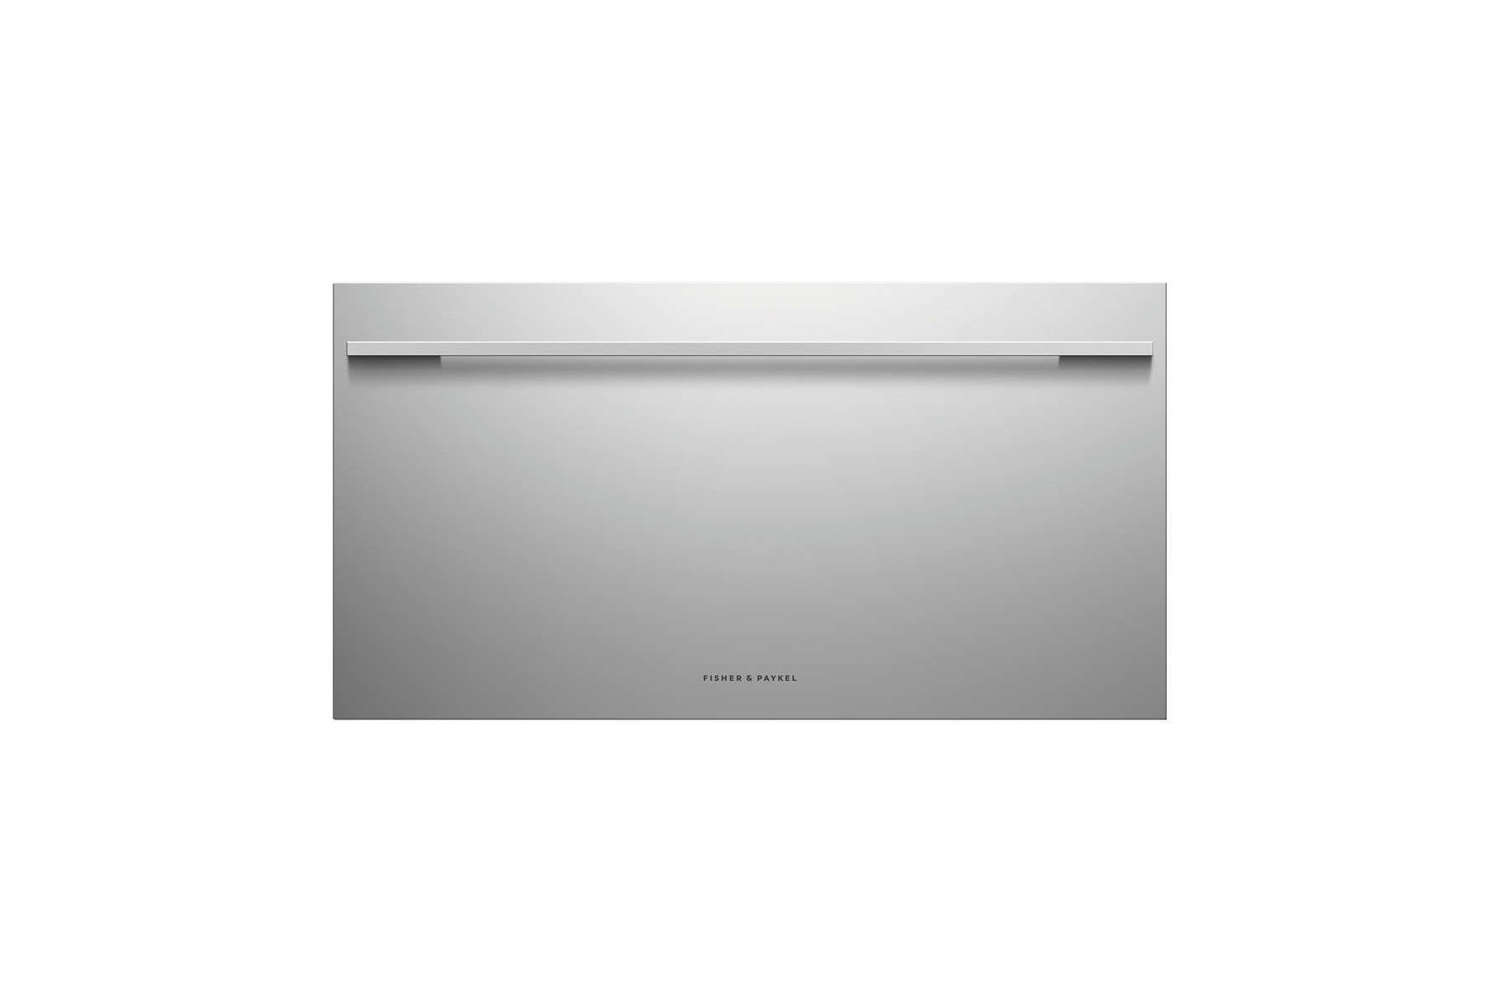 10 Easy Pieces Choosing An Undercounter Refrigerator The Fisher & Paykel 34 Inch Built In Single Drawer (RB36S\25MKIWN\1) is \$\2,899 at AJ Madison.